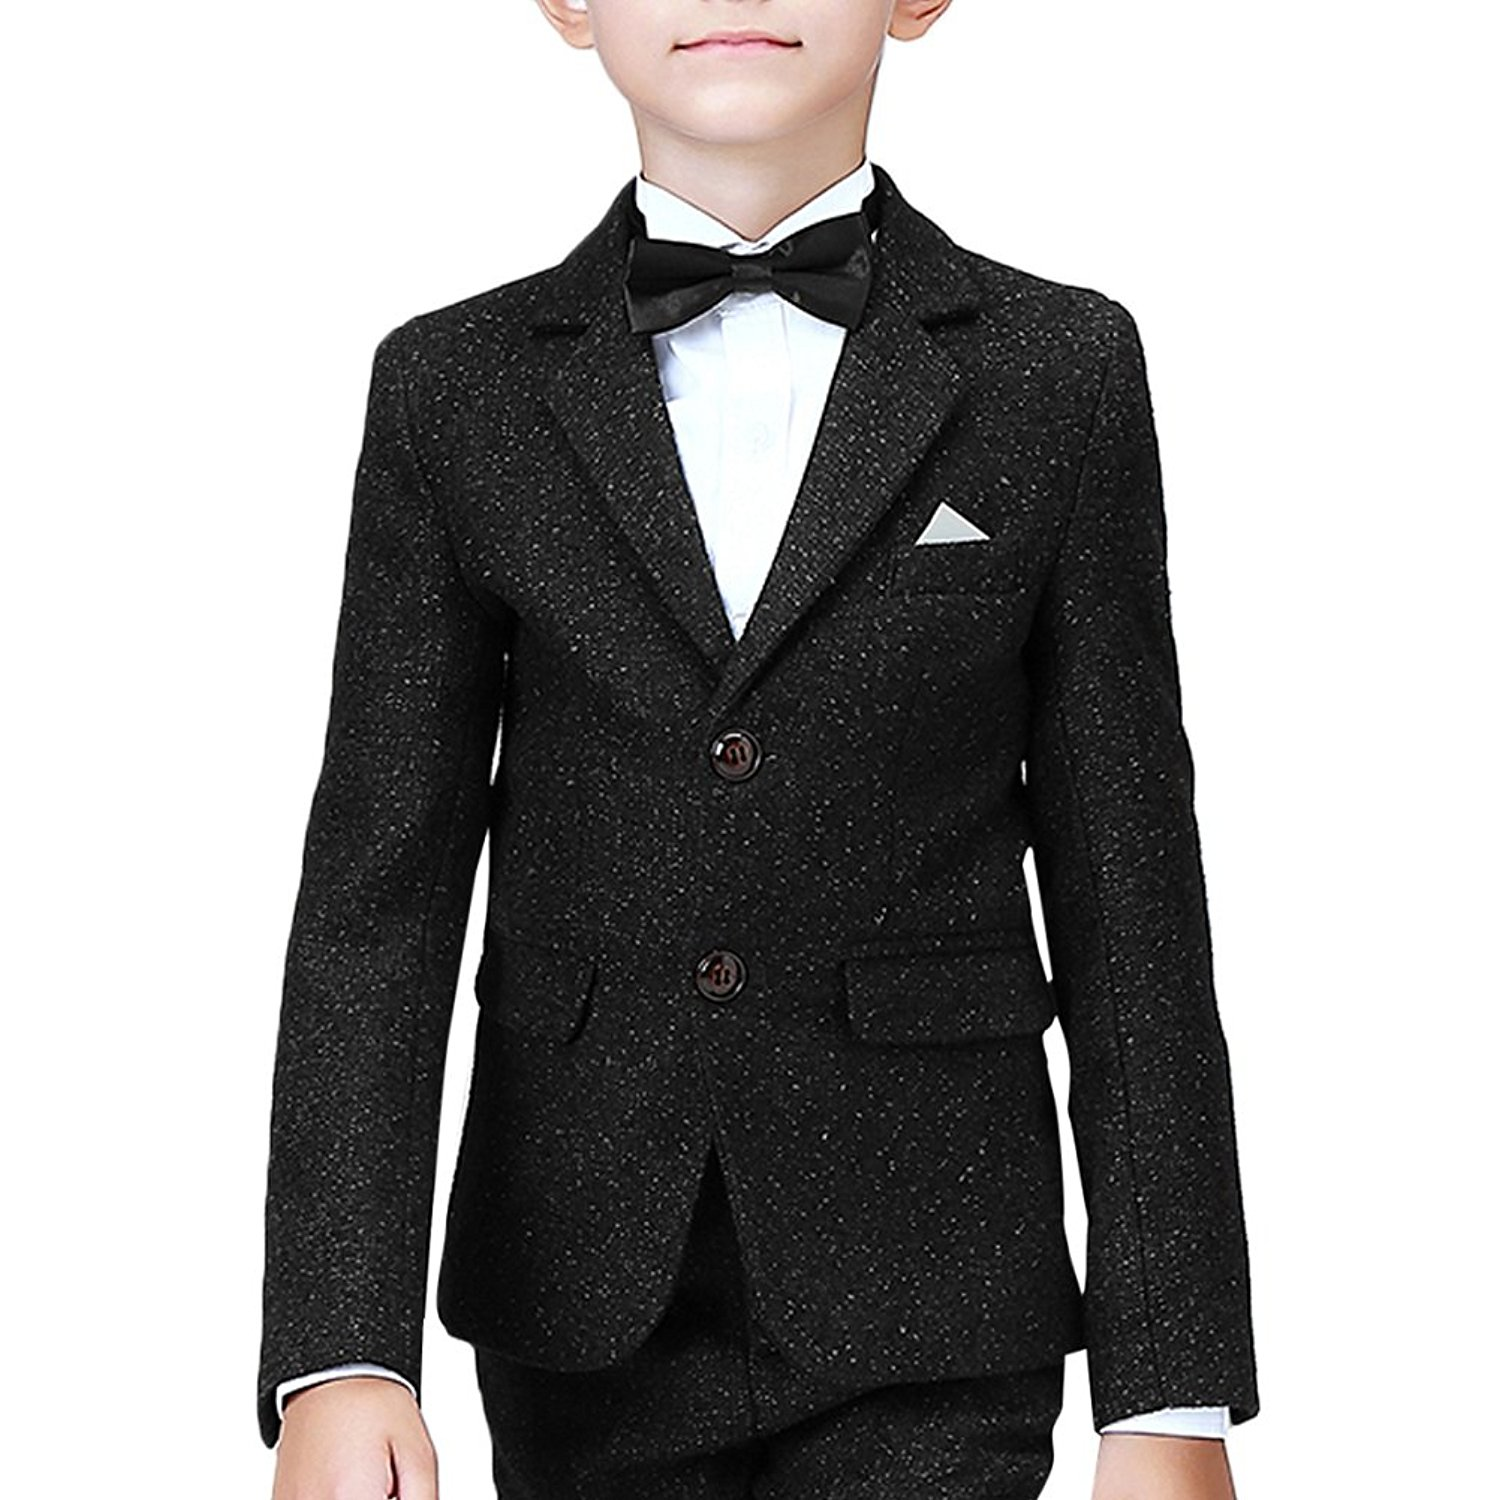 1392aea04 Get Quotations · Boyland Boys Slim Fit Suit Notched Lapel Performance Dress  Suit Black/Royal Navy Blue (